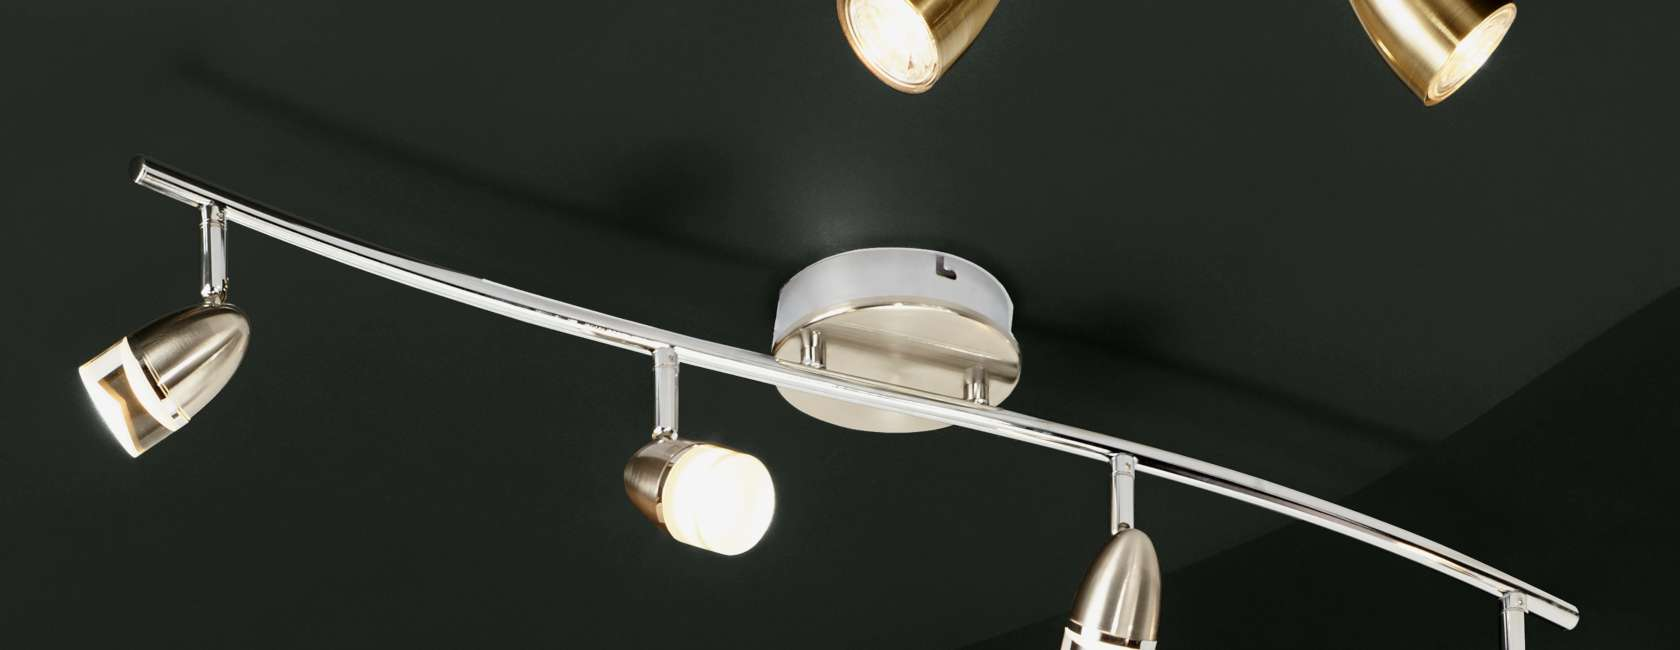 John lewis avenger led lighting collection at john lewis john lewis avenger led lighting collection aloadofball Image collections